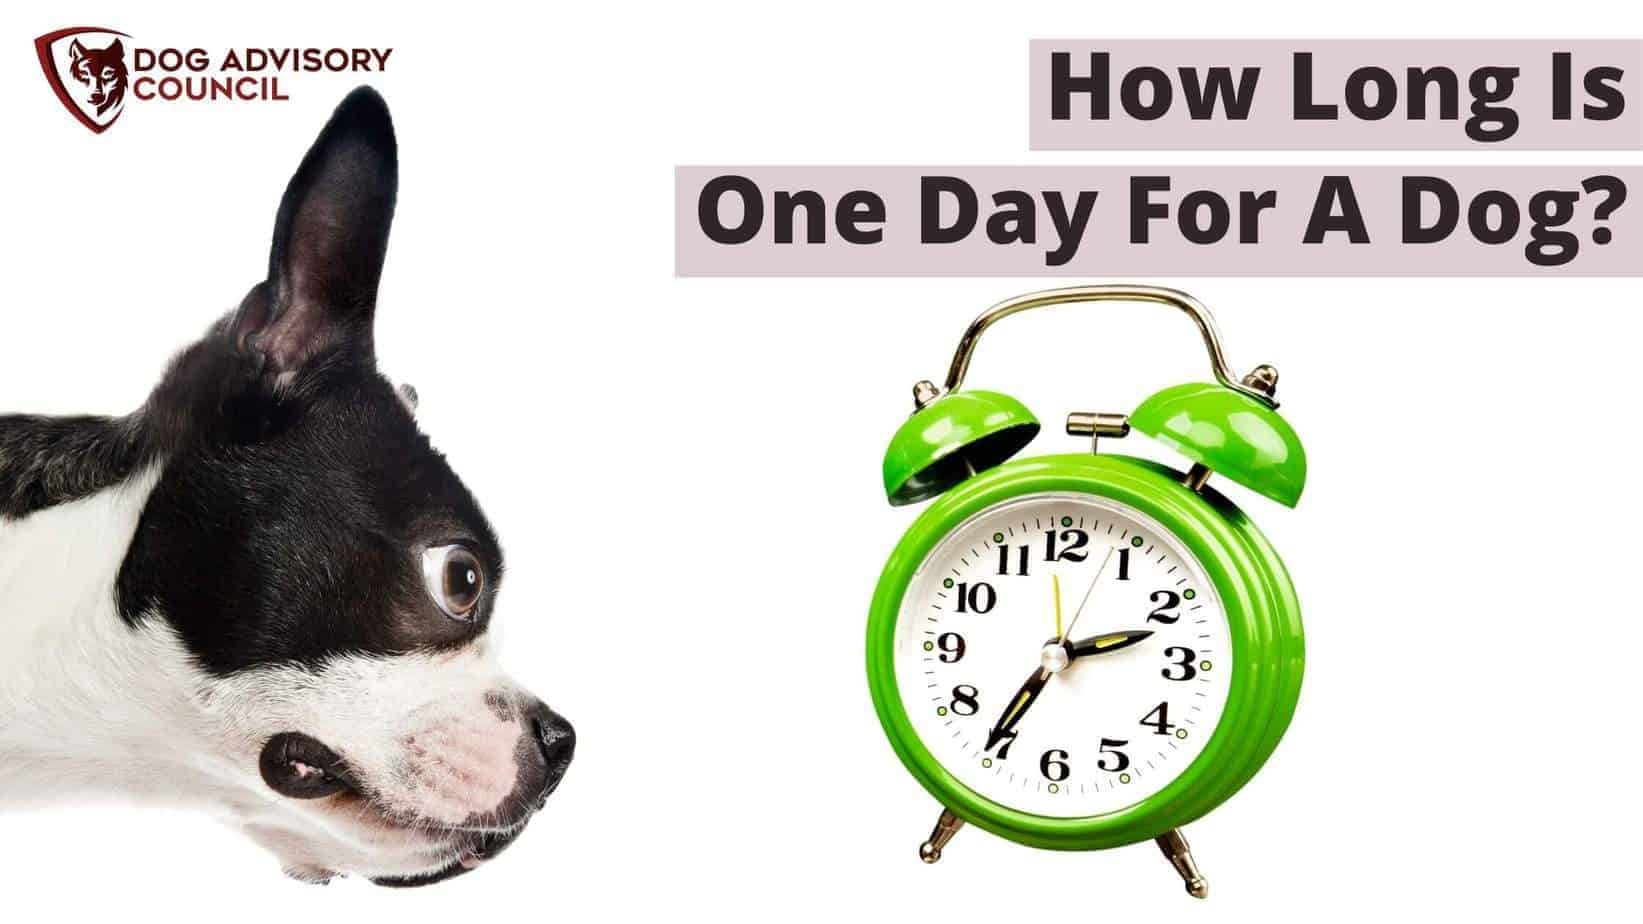 How Long is One Day for a Dog